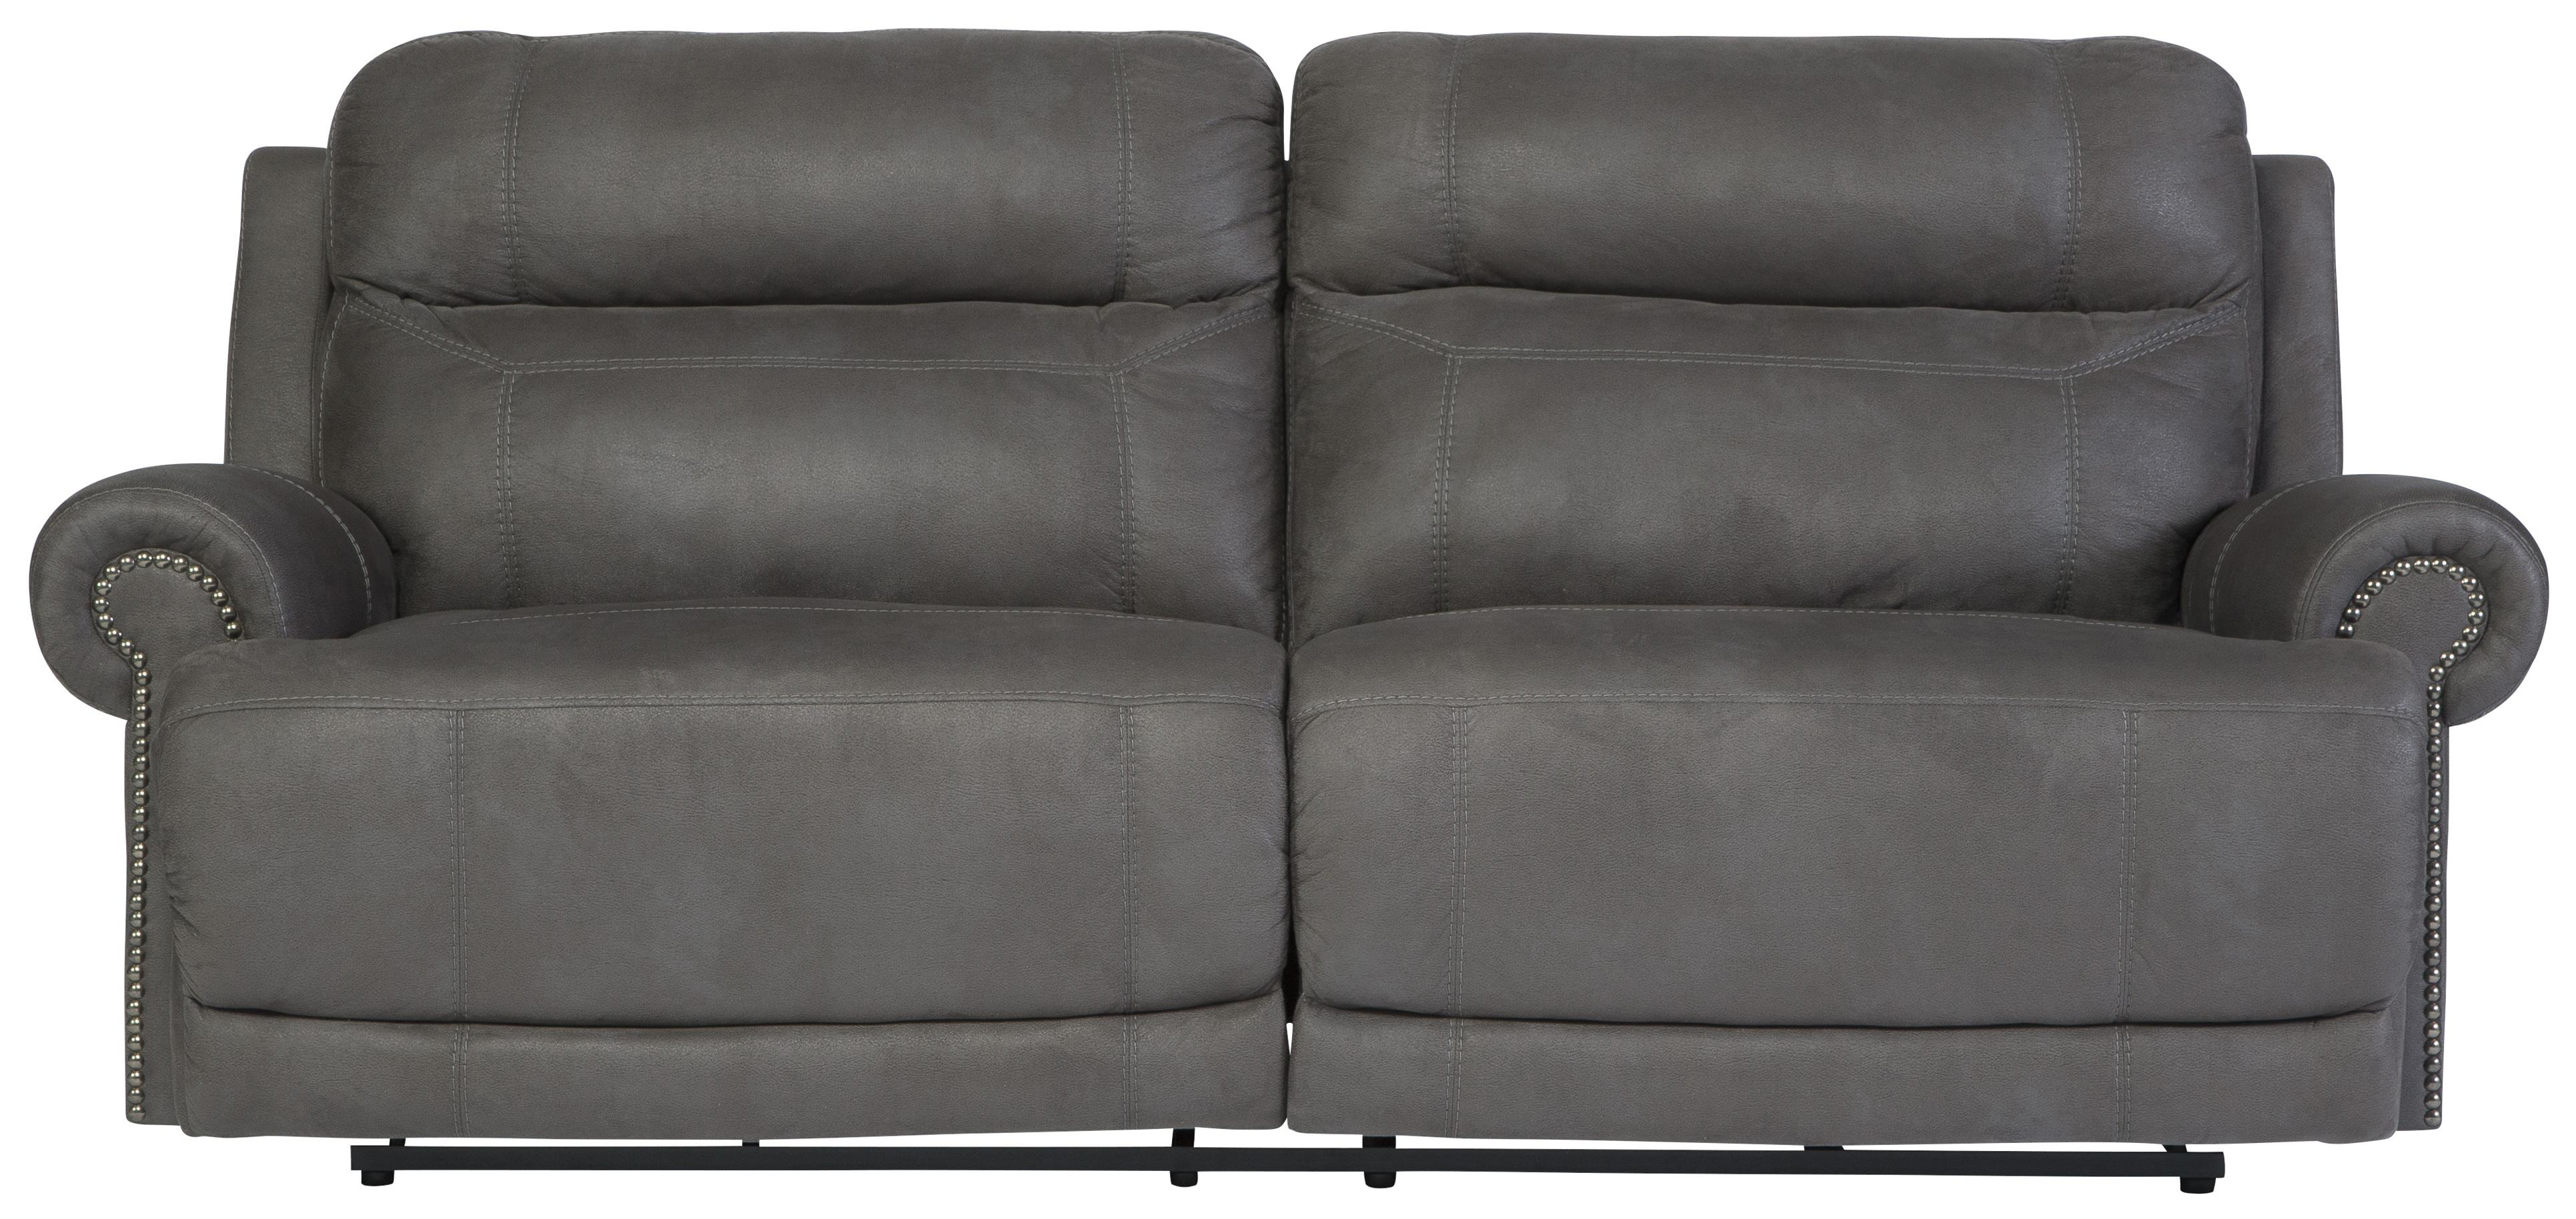 2 Seat Faux Leather Reclining Power Sofa With Rolled Arms With Nailhead Trim